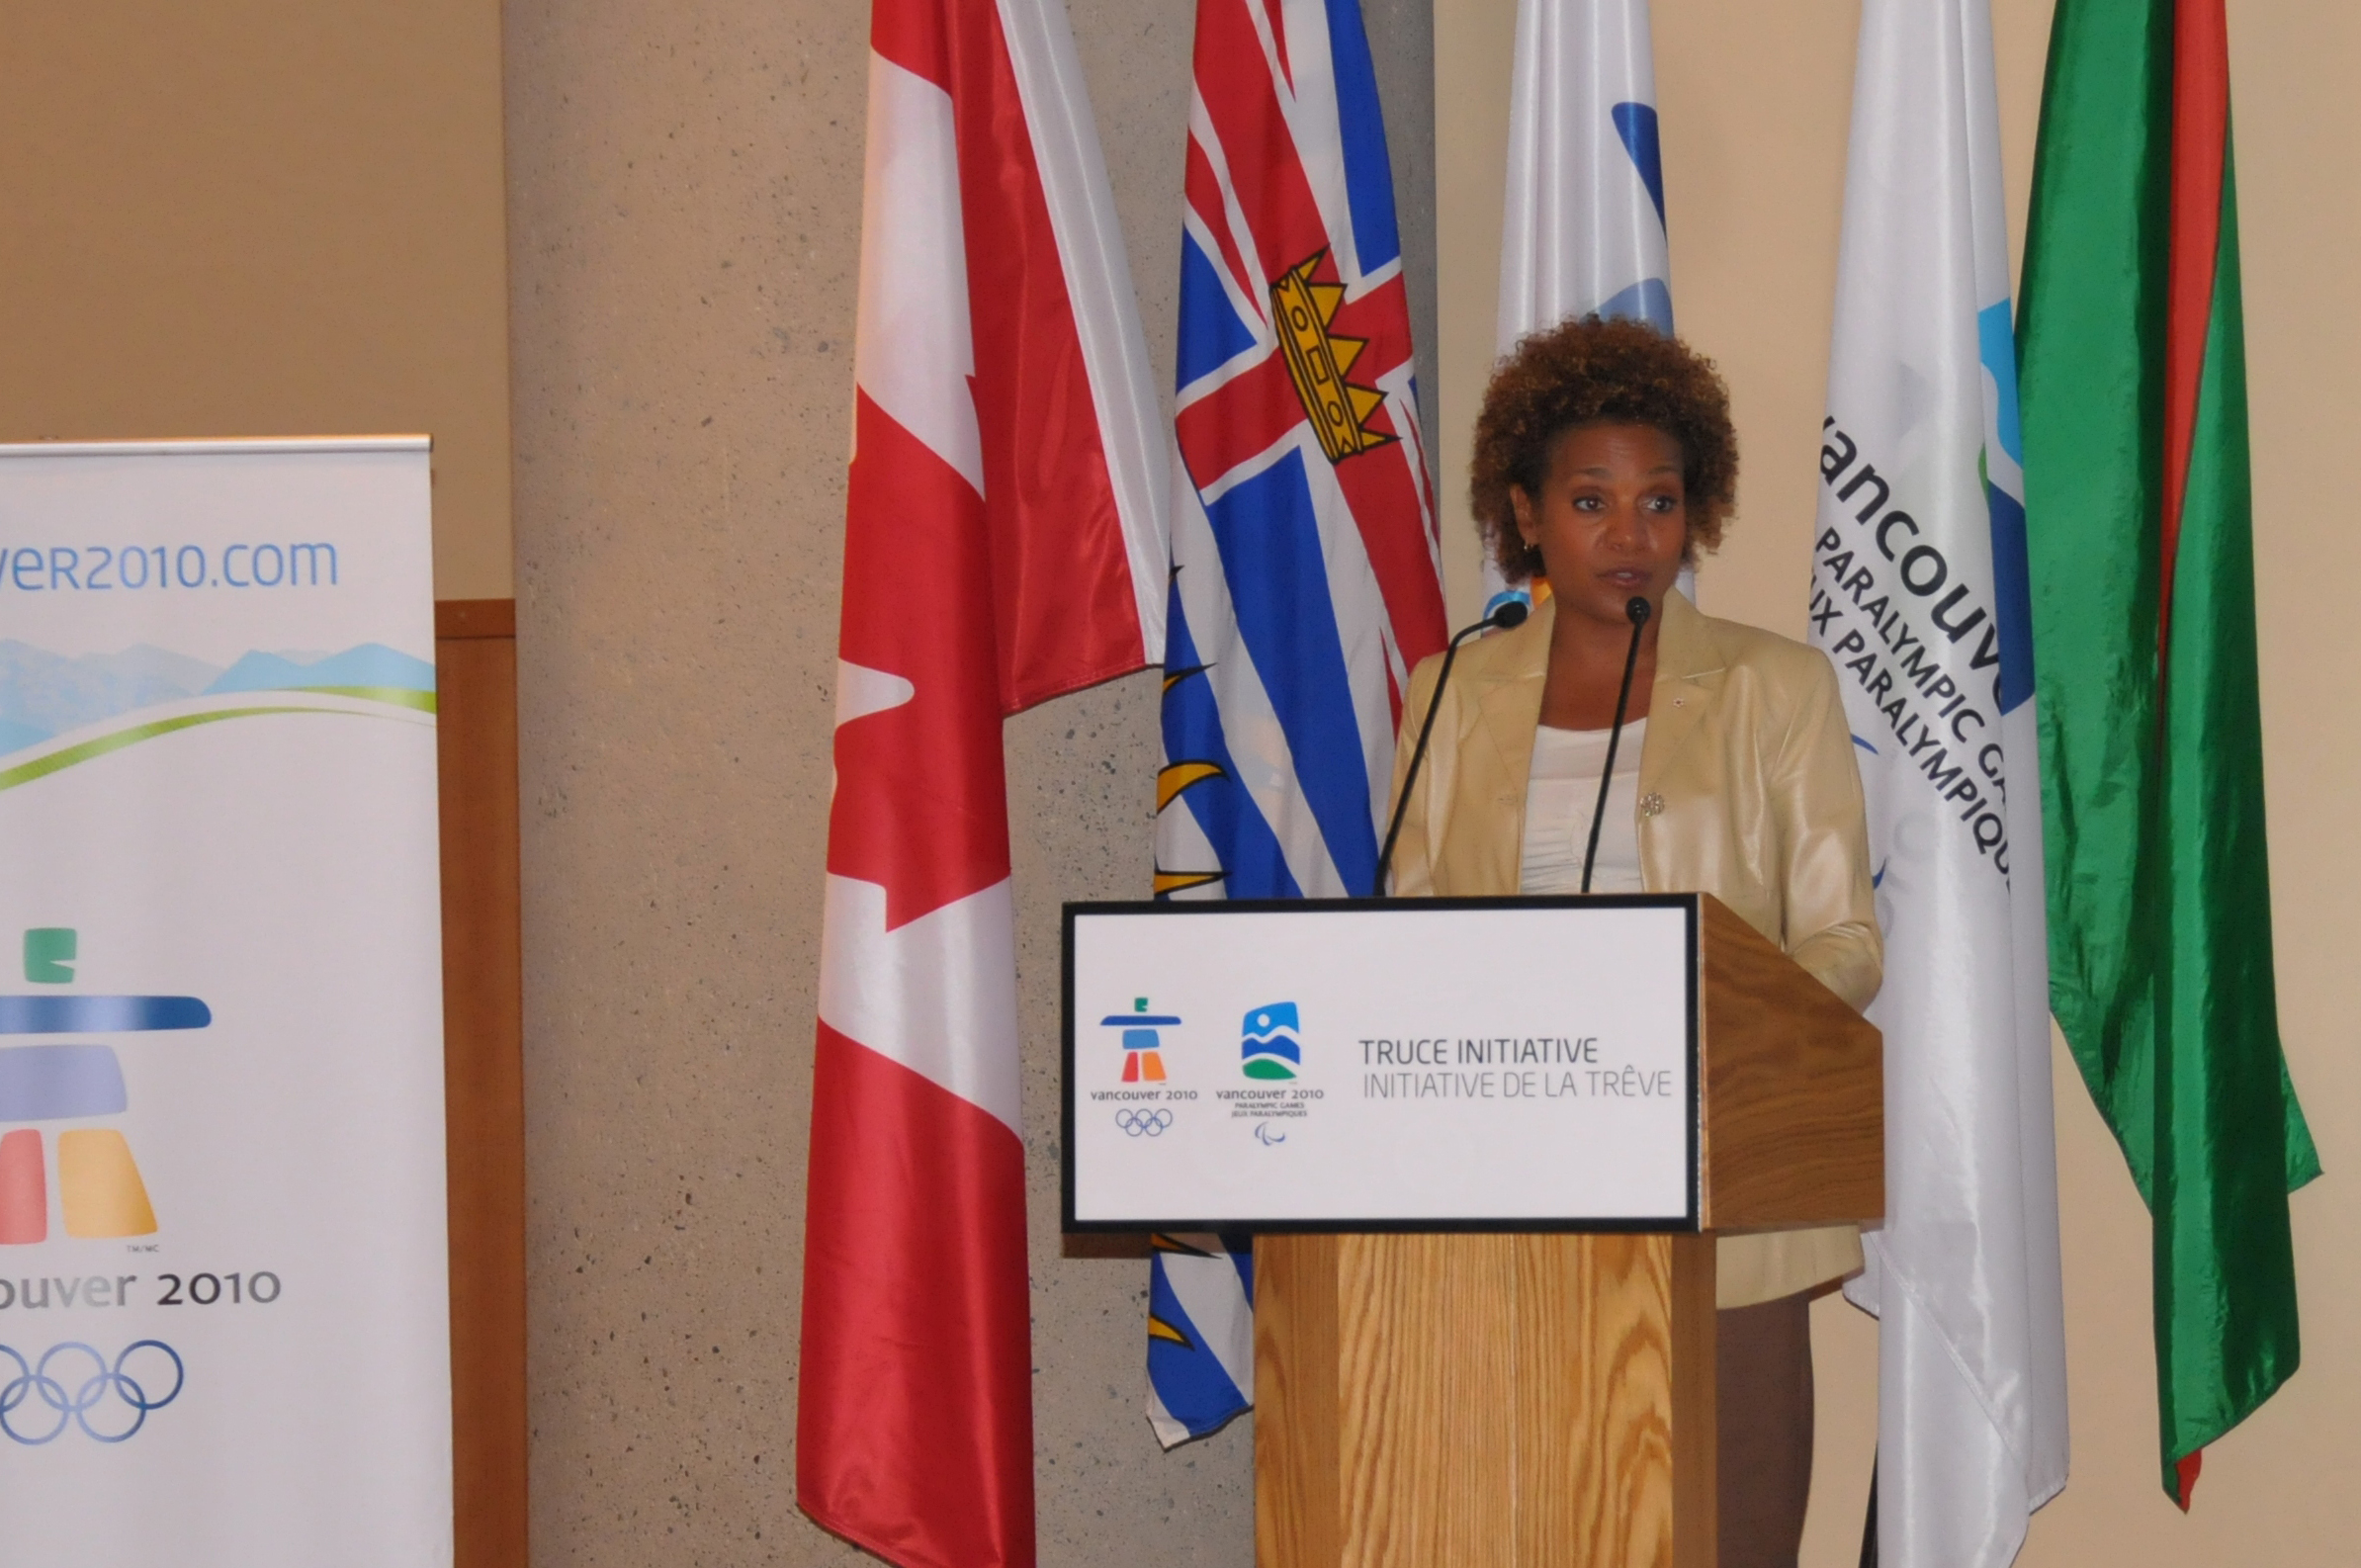 Her Excellency the Right Honourable Michaëlle Jean, Governor General of Canada, addresses the audience at the Truce Dialogue for youth held at the Ismaili Centre, Burnaby. Photo: Aziz Ladha